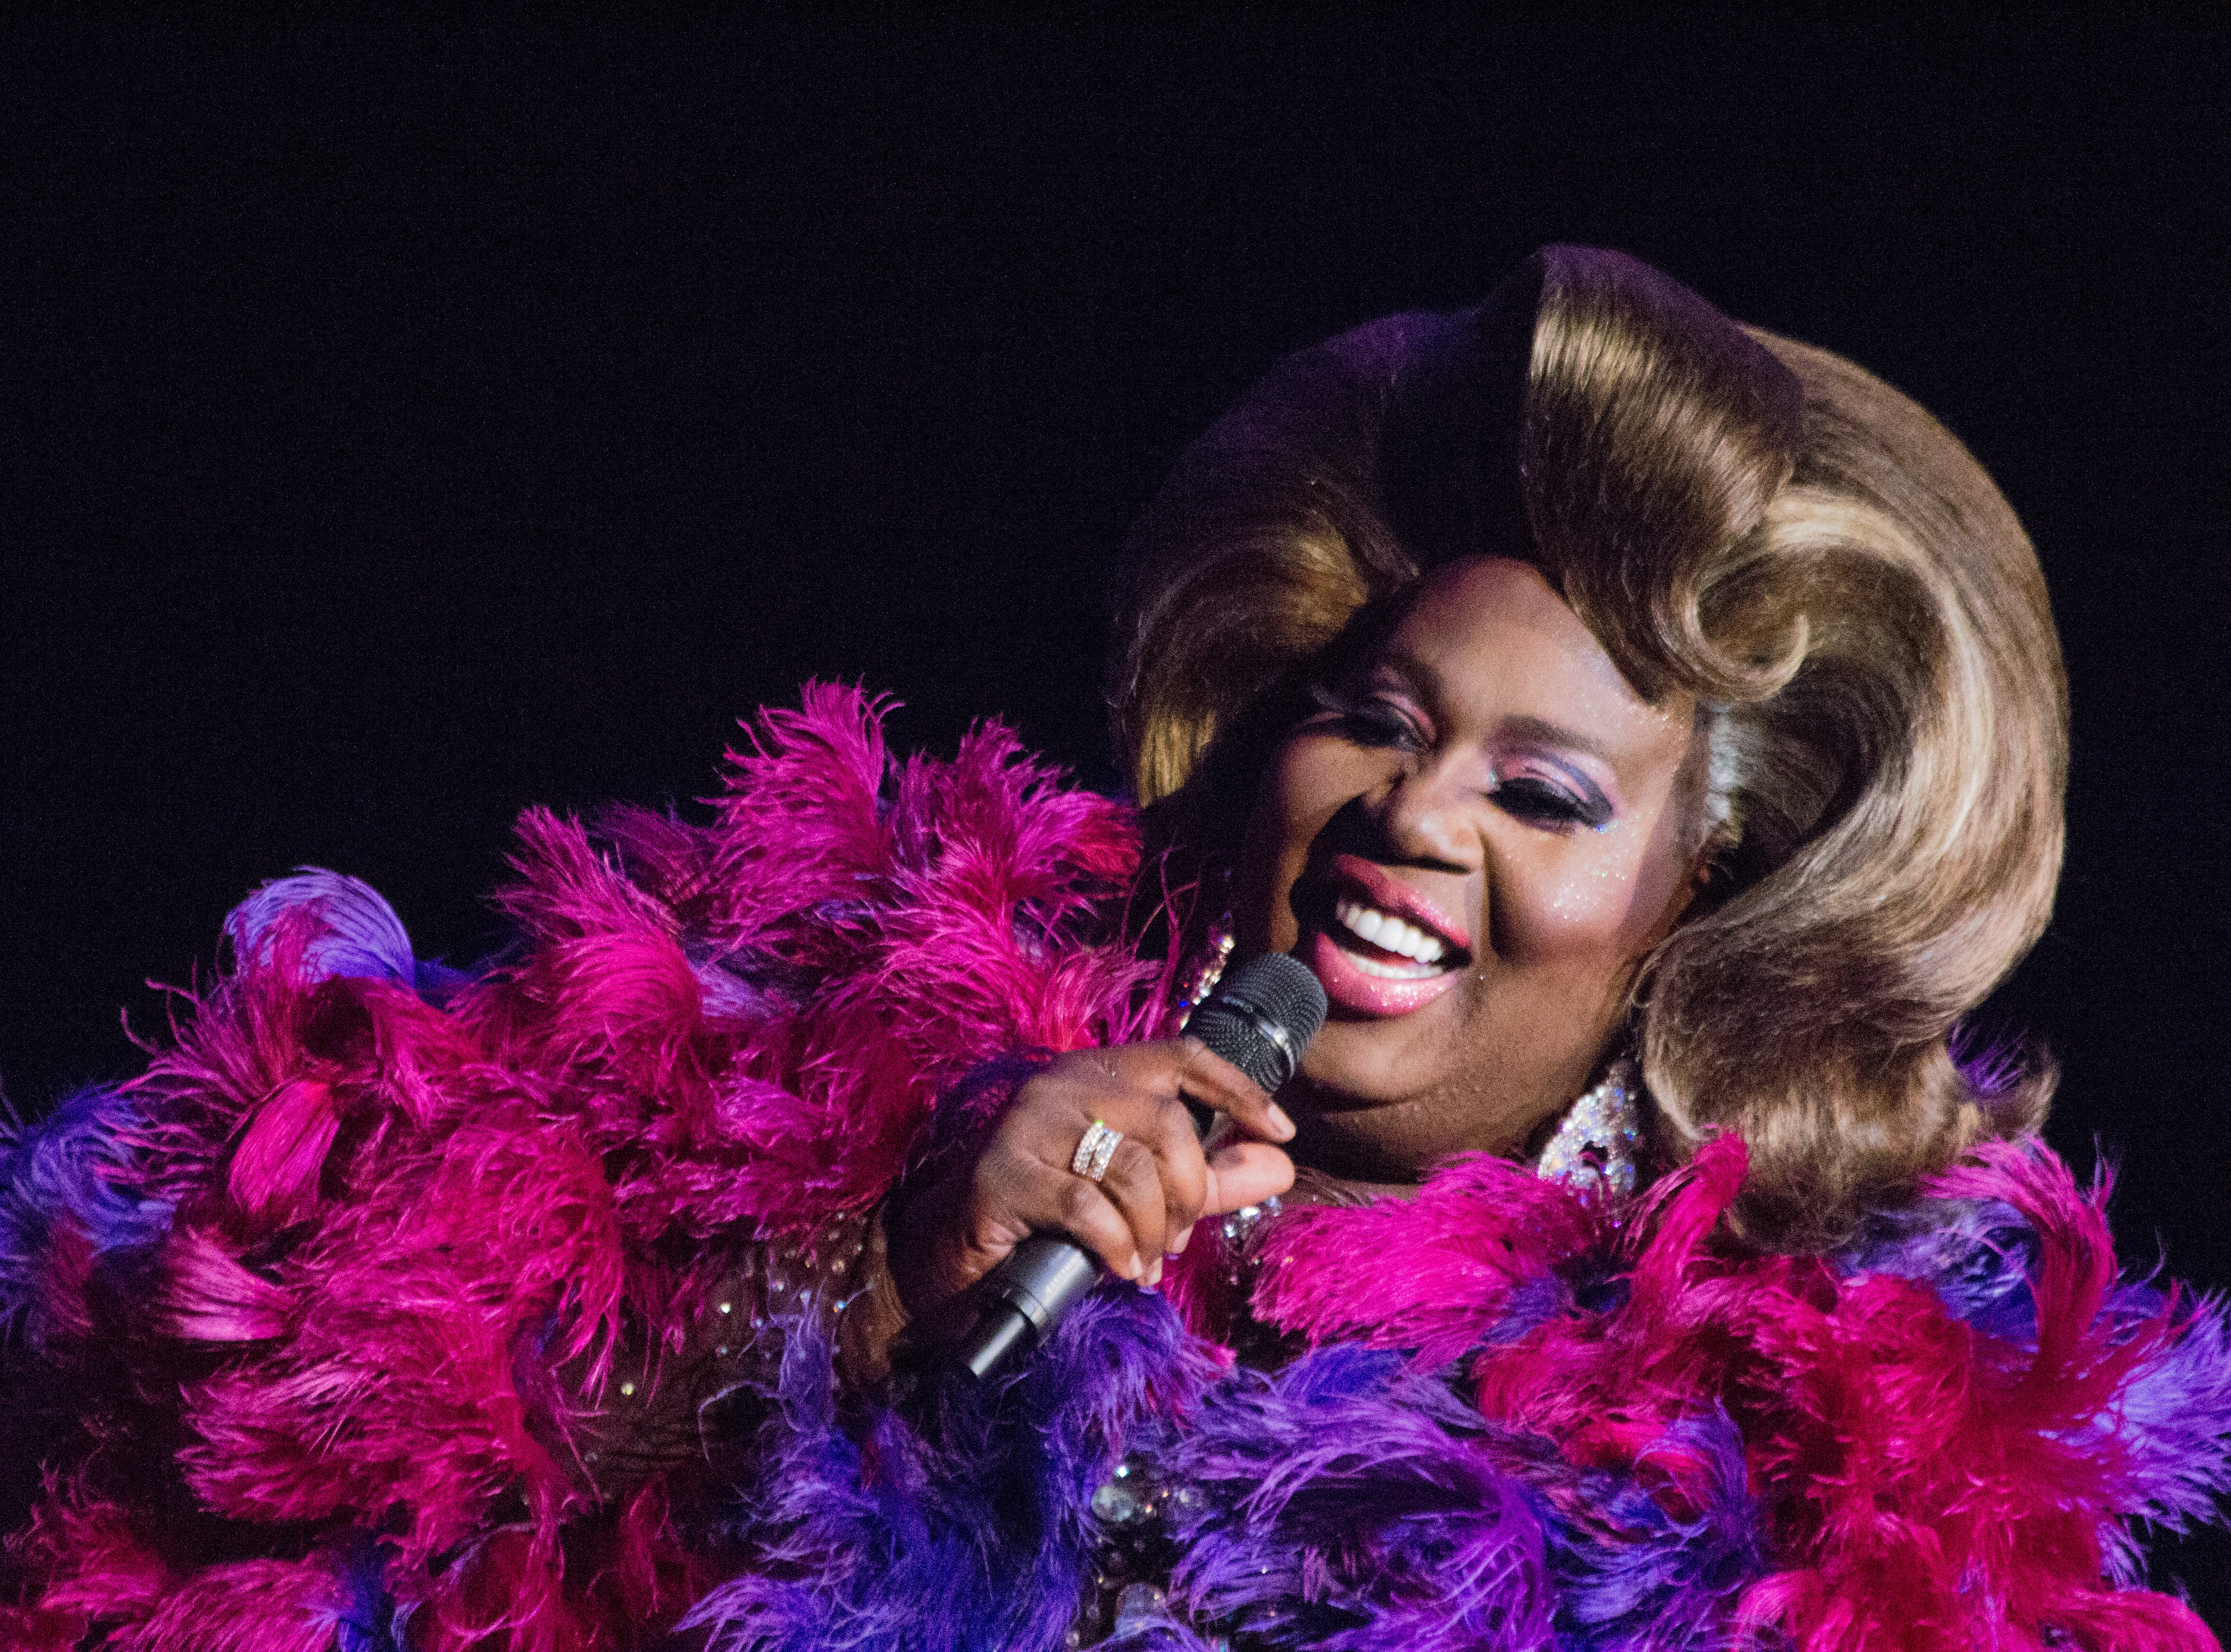 RuPaul's Drag Race star Latrice Royale at the BIjou Theatre on Jan. 5, 2019.